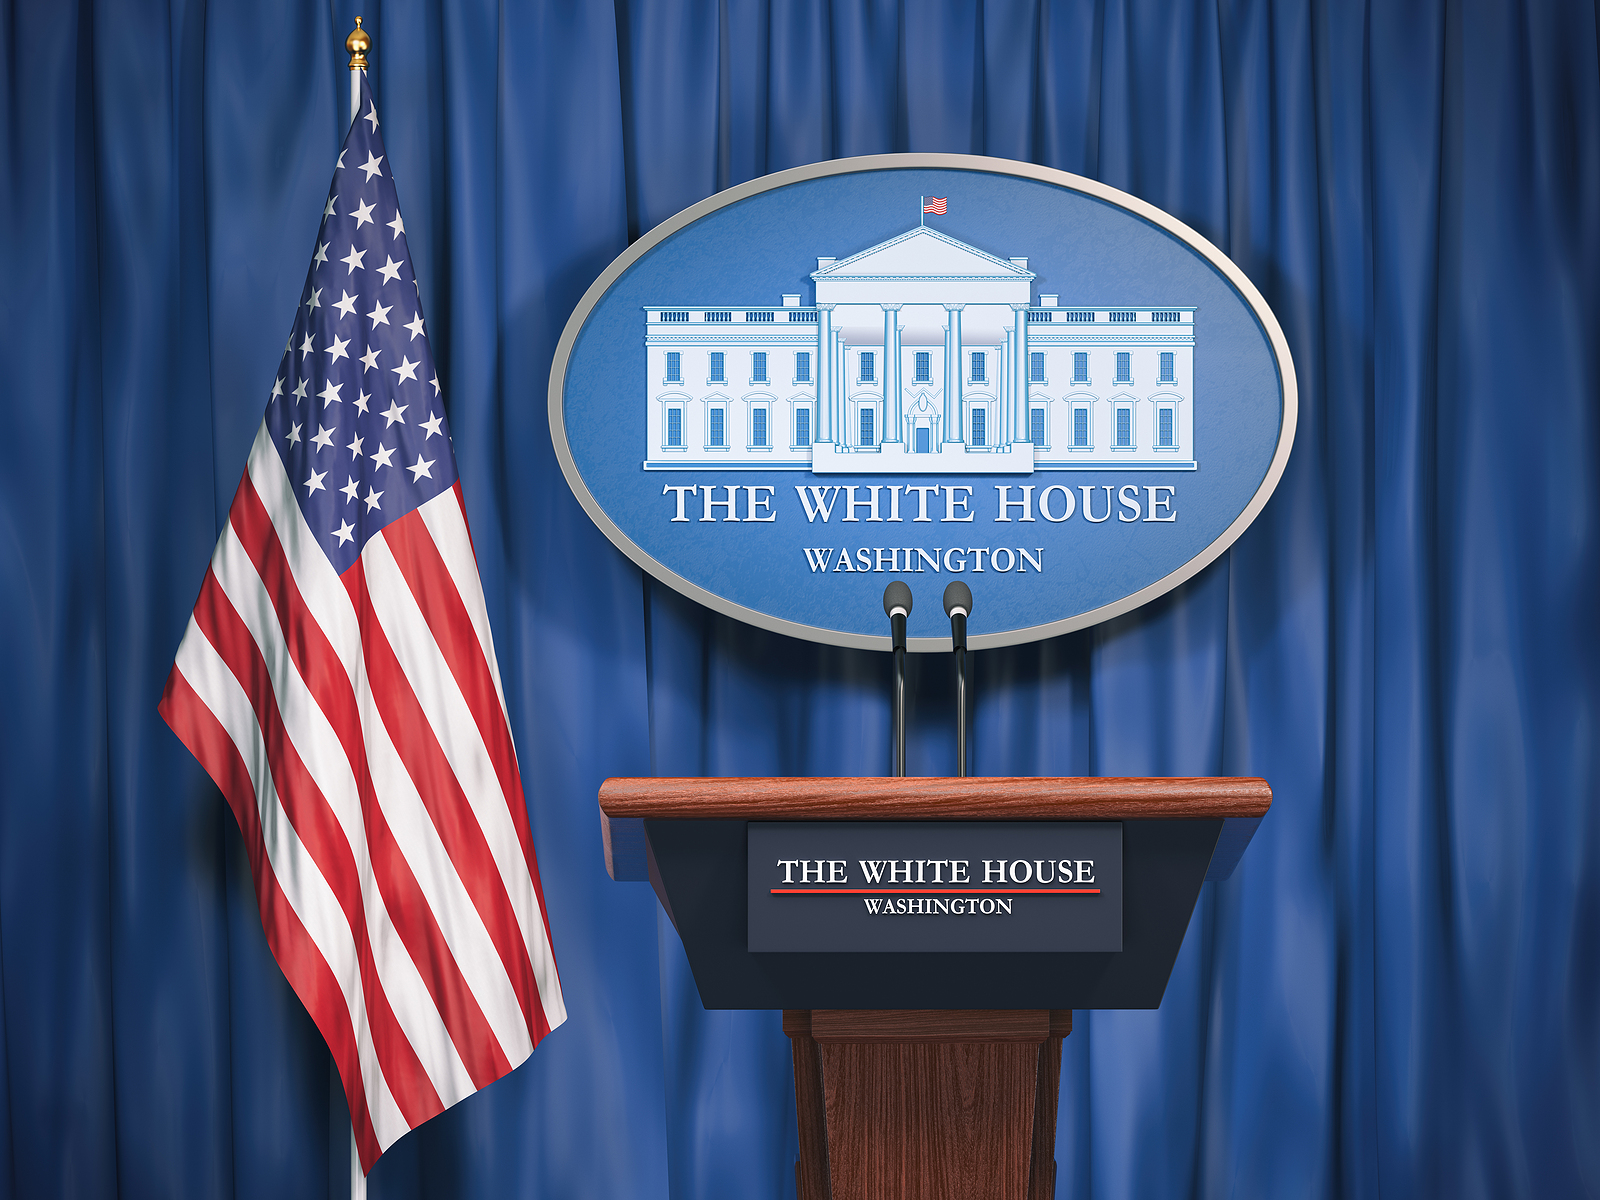 White House Press Conference Stage